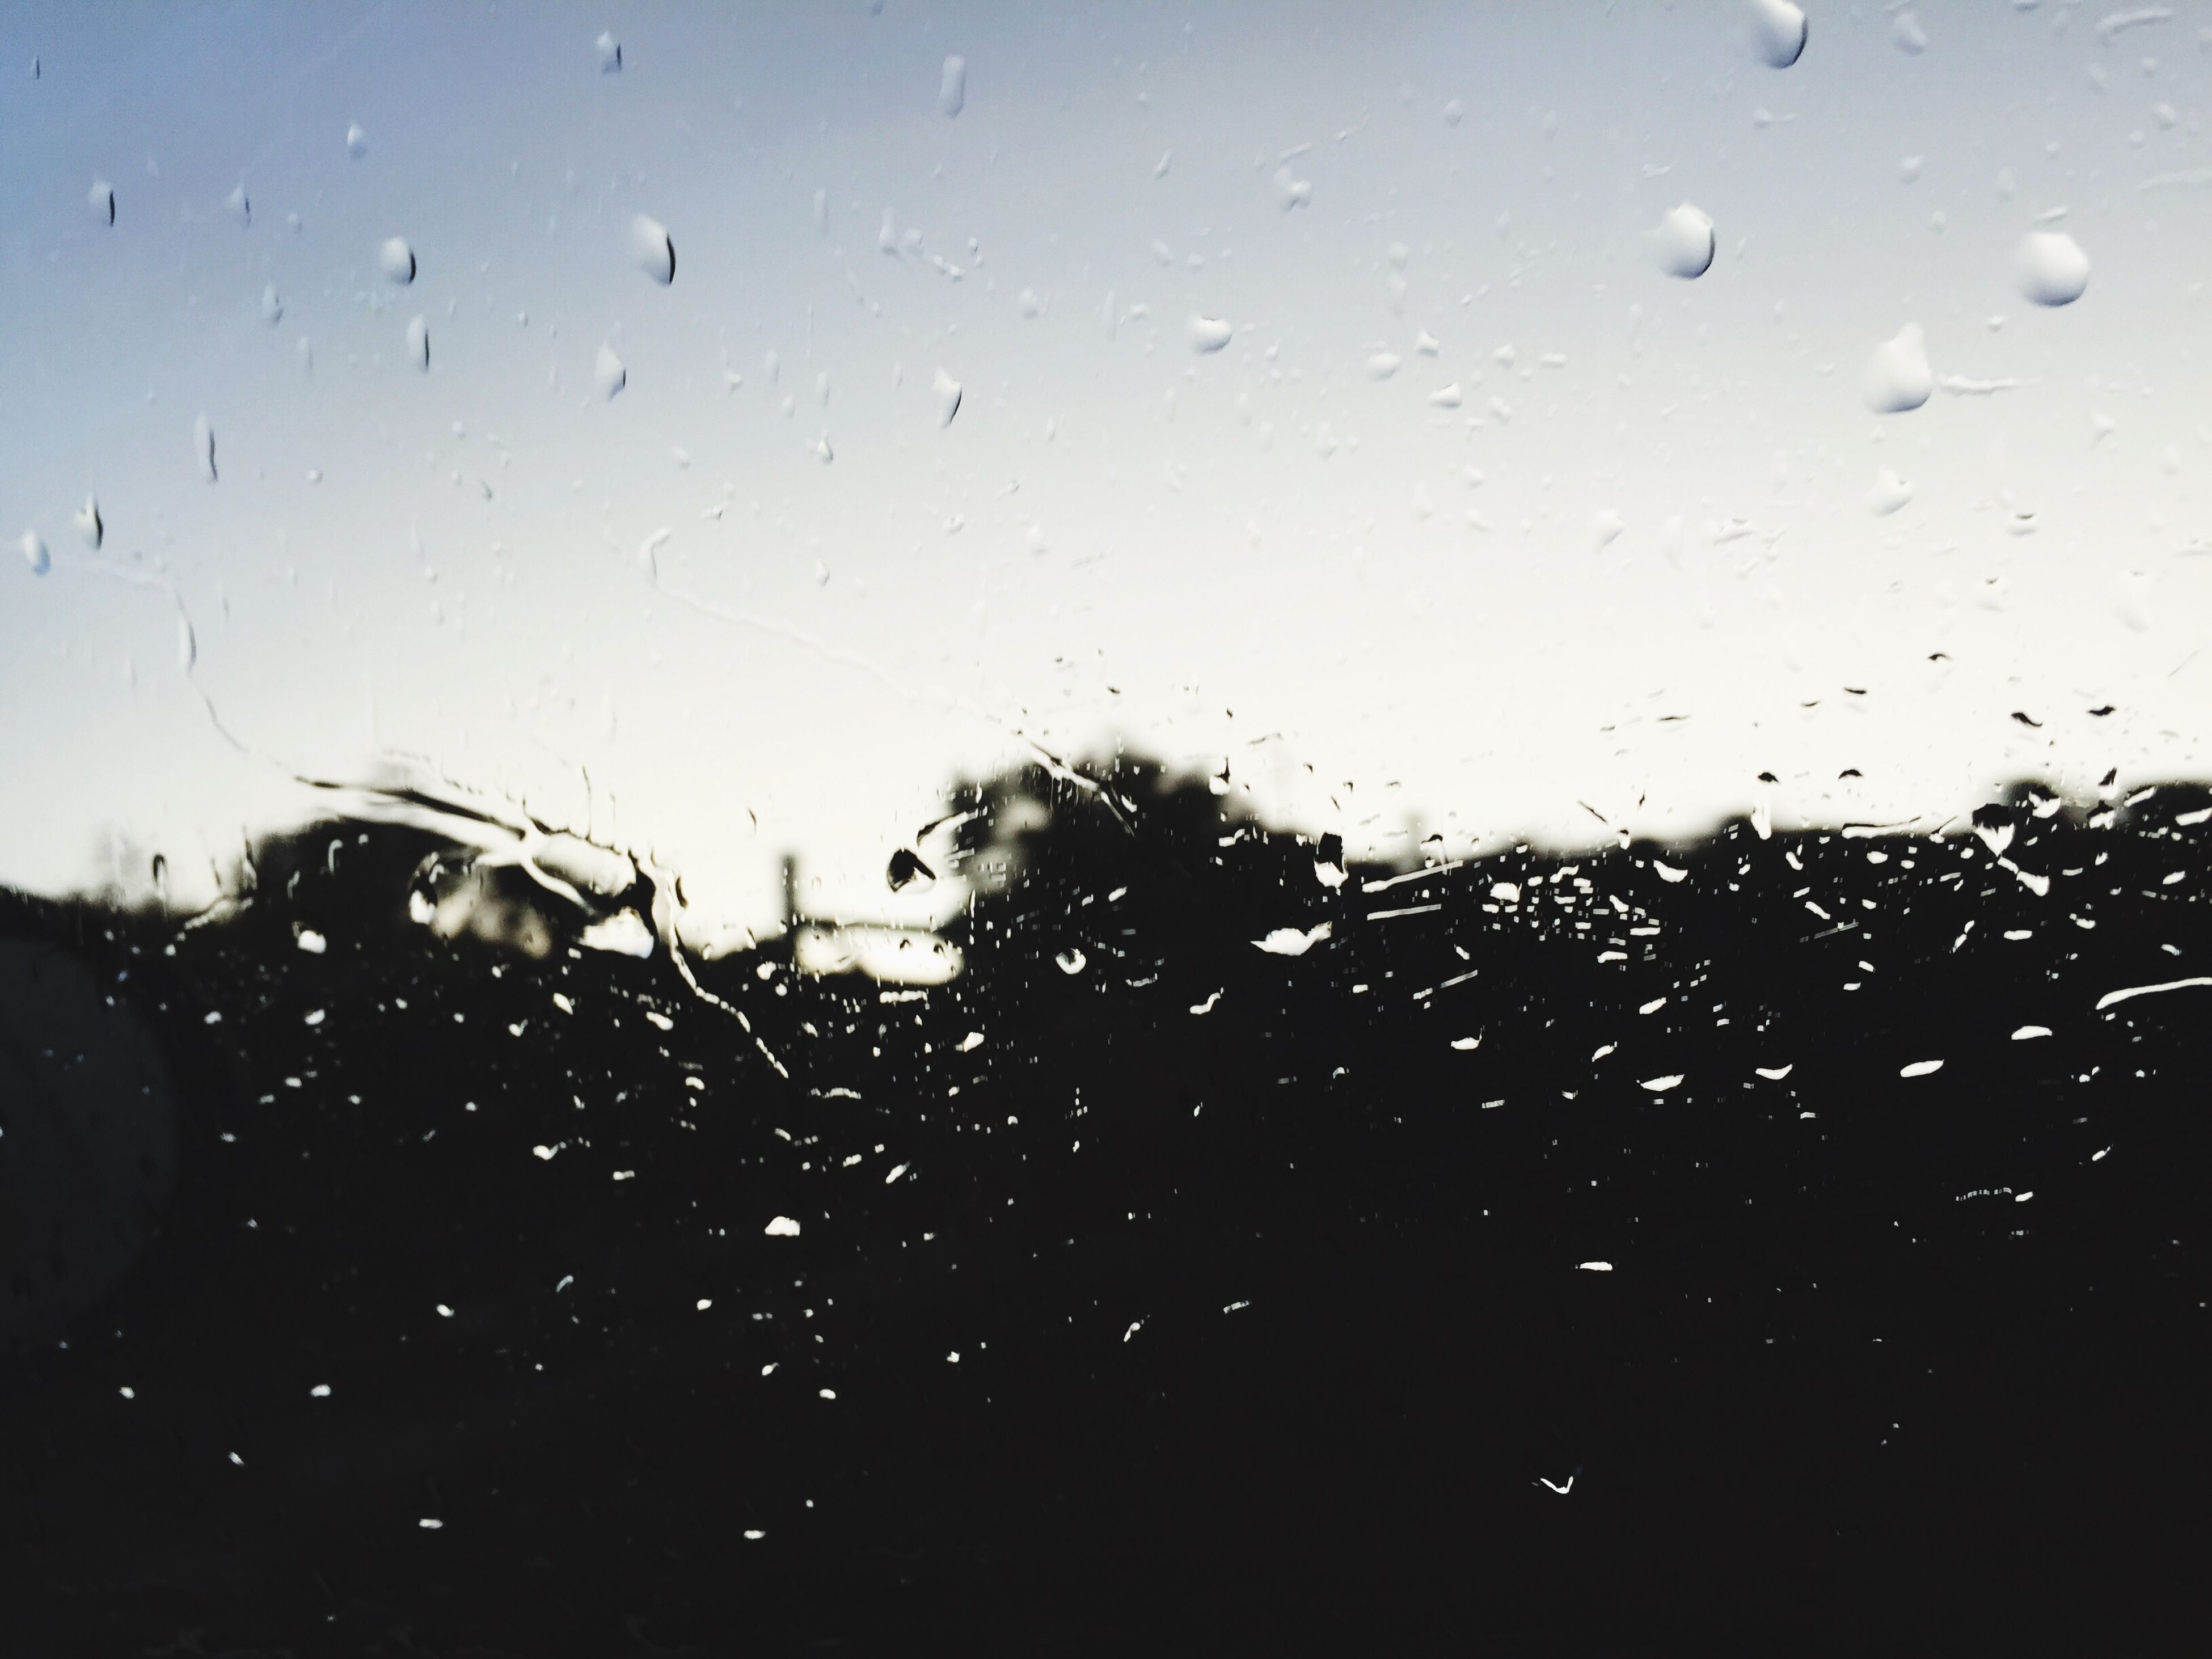 drop, wet, rain, window, transparent, glass - material, raindrop, indoors, water, weather, season, car, sky, transportation, vehicle interior, glass, full frame, backgrounds, mode of transport, focus on foreground